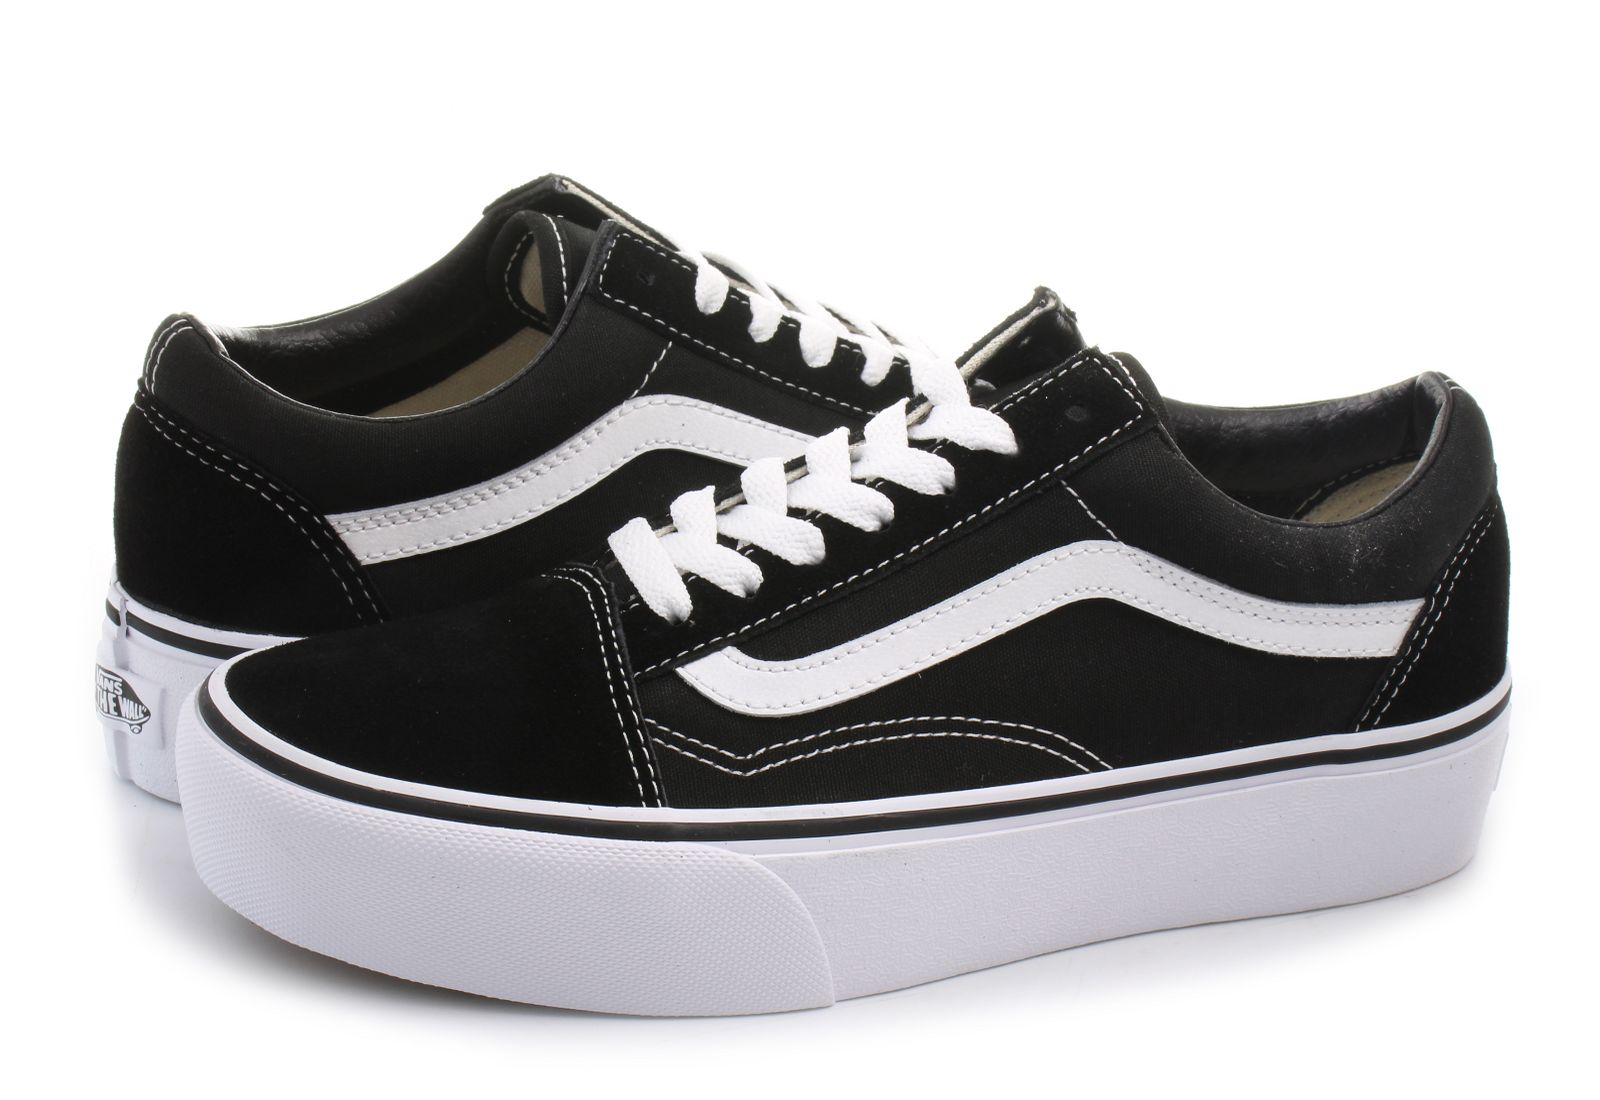 vans old skool damskie czarne 37 darmowa dostawa. Black Bedroom Furniture Sets. Home Design Ideas